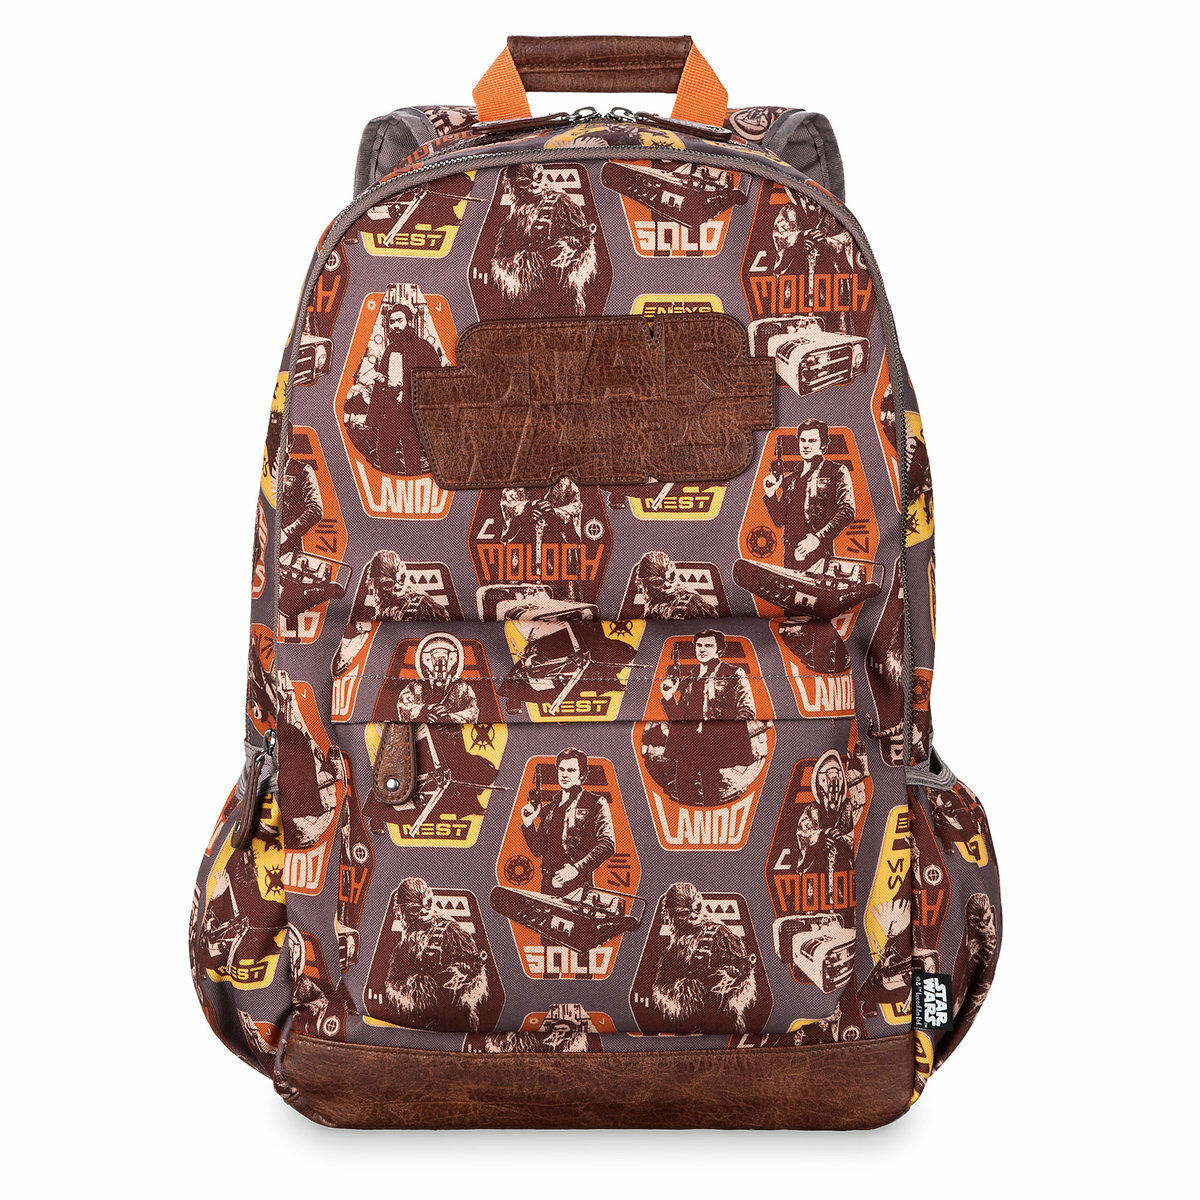 Disney Store Solo: A Star Wars Story Backpack for Adults Lap